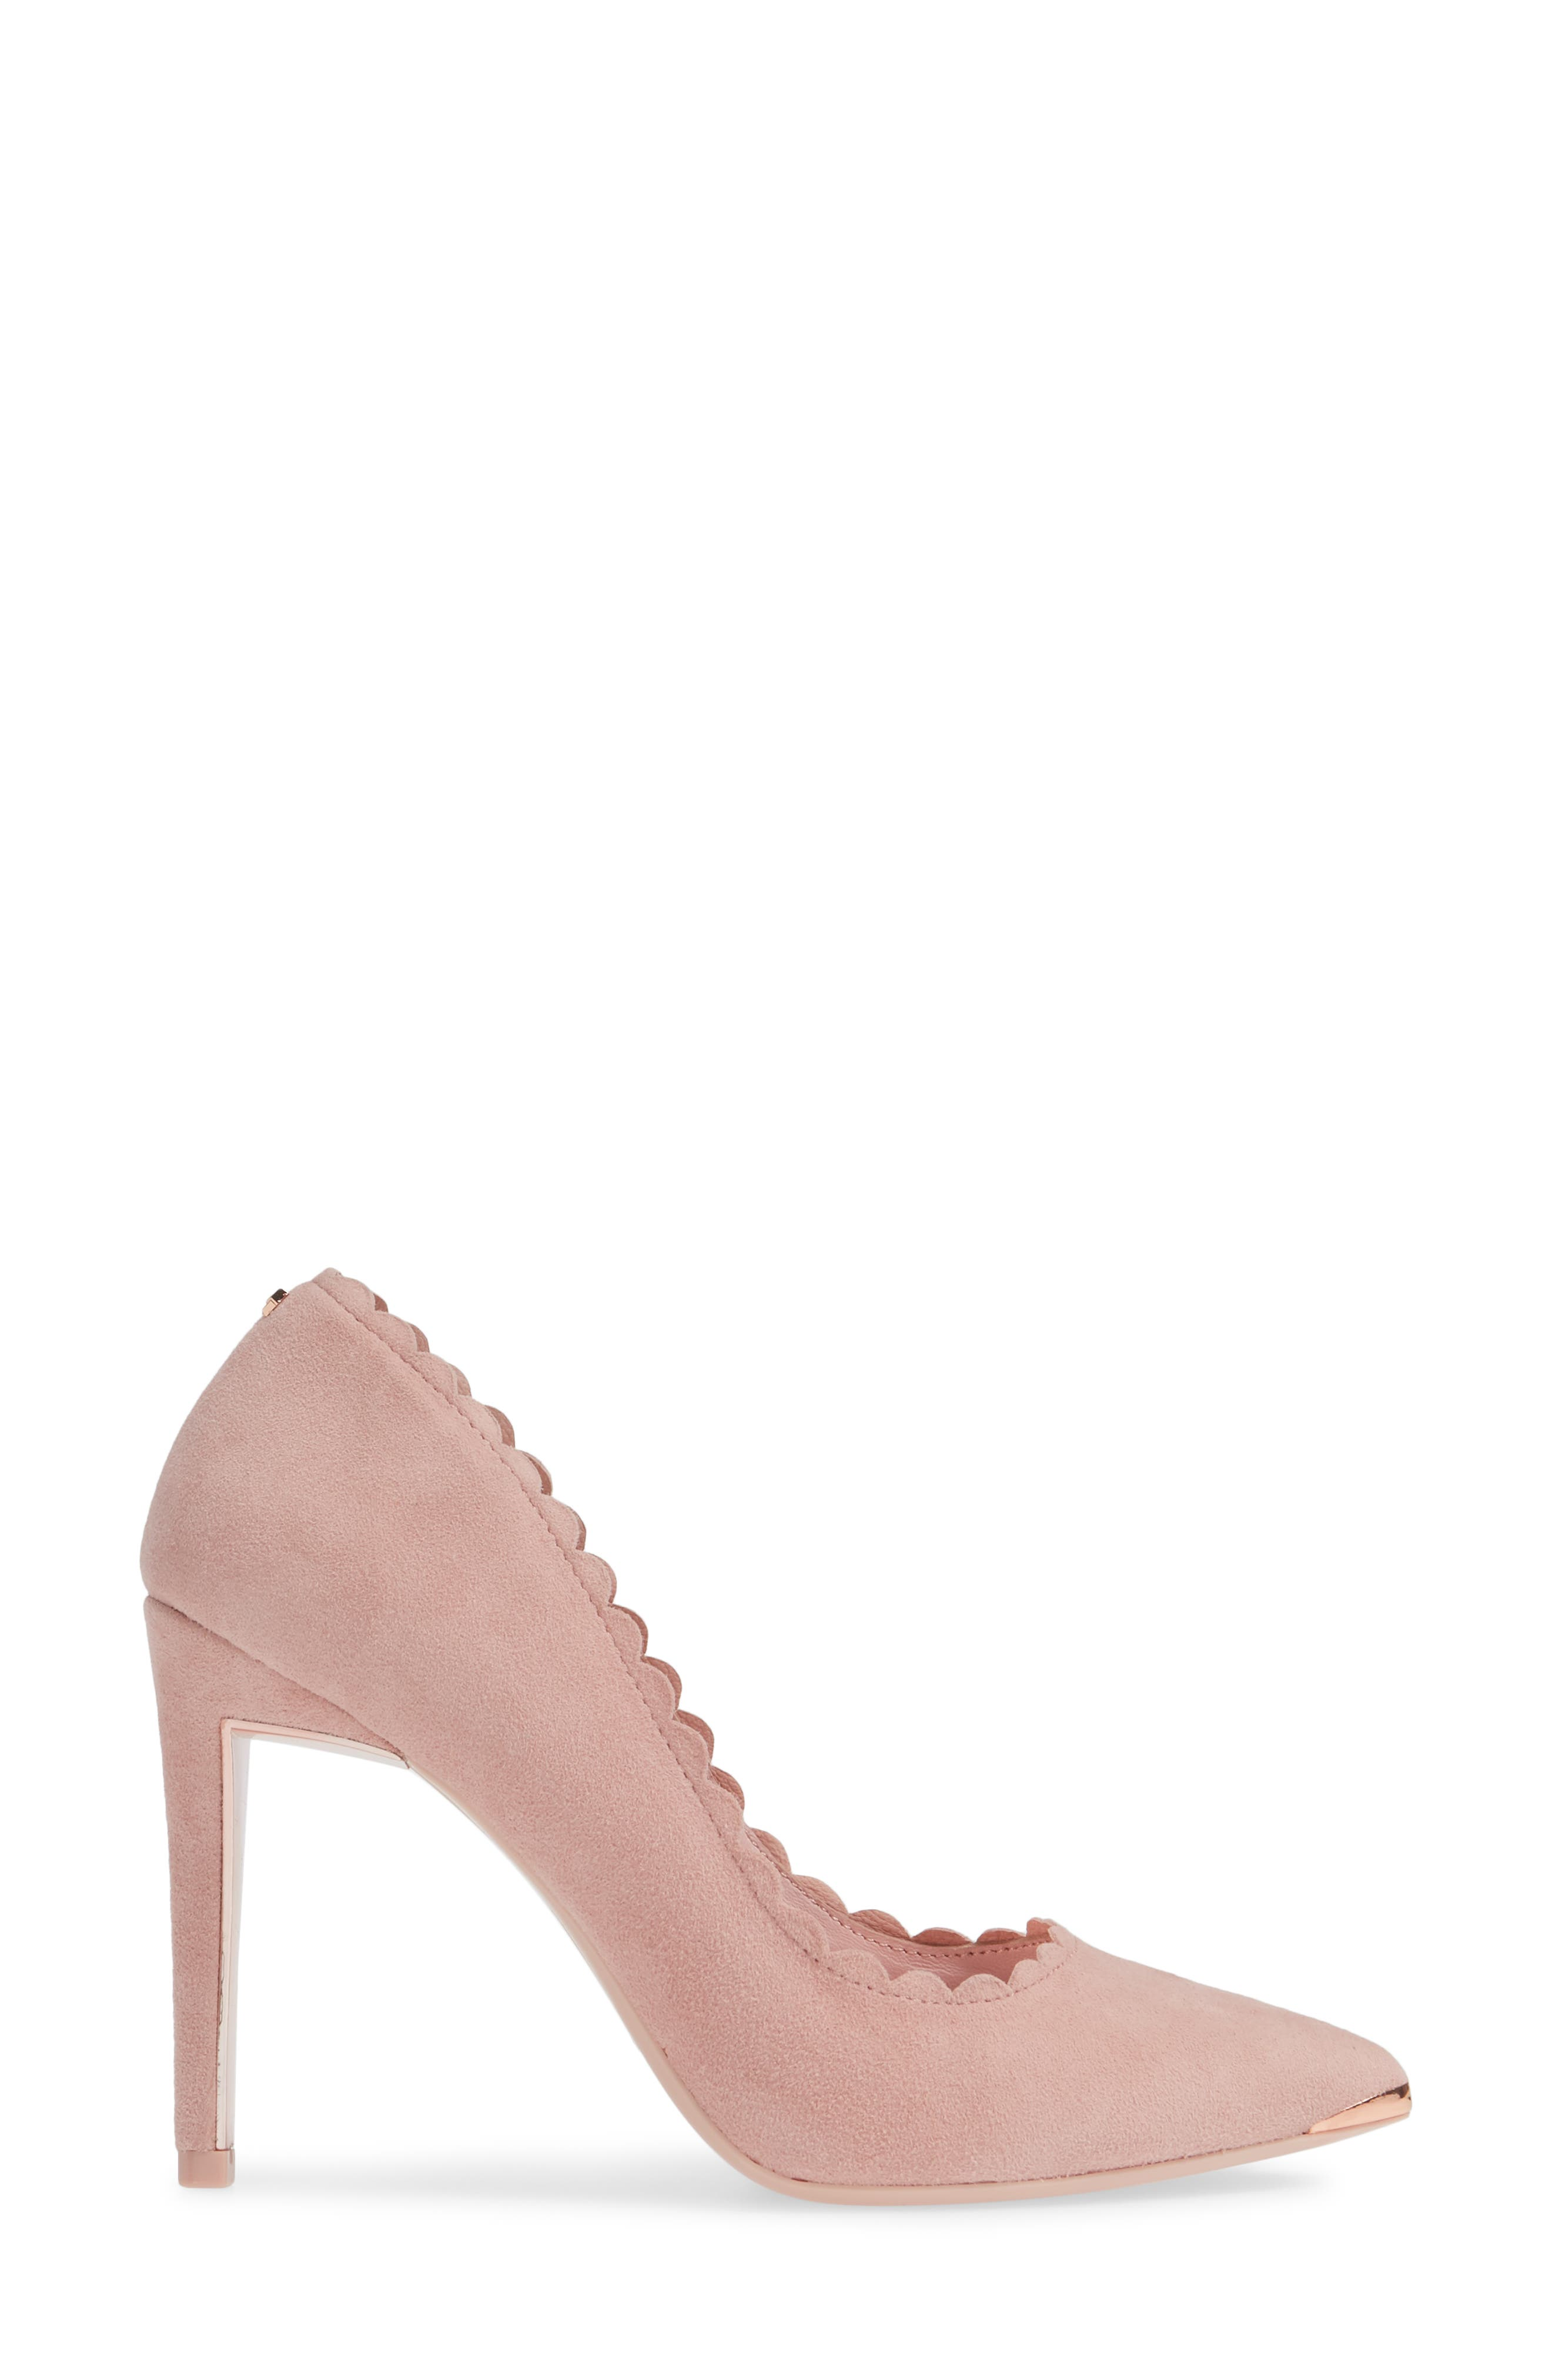 Sloana Pointy Toe Pump,                             Alternate thumbnail 3, color,                             PINK BLOSSOM SUEDE